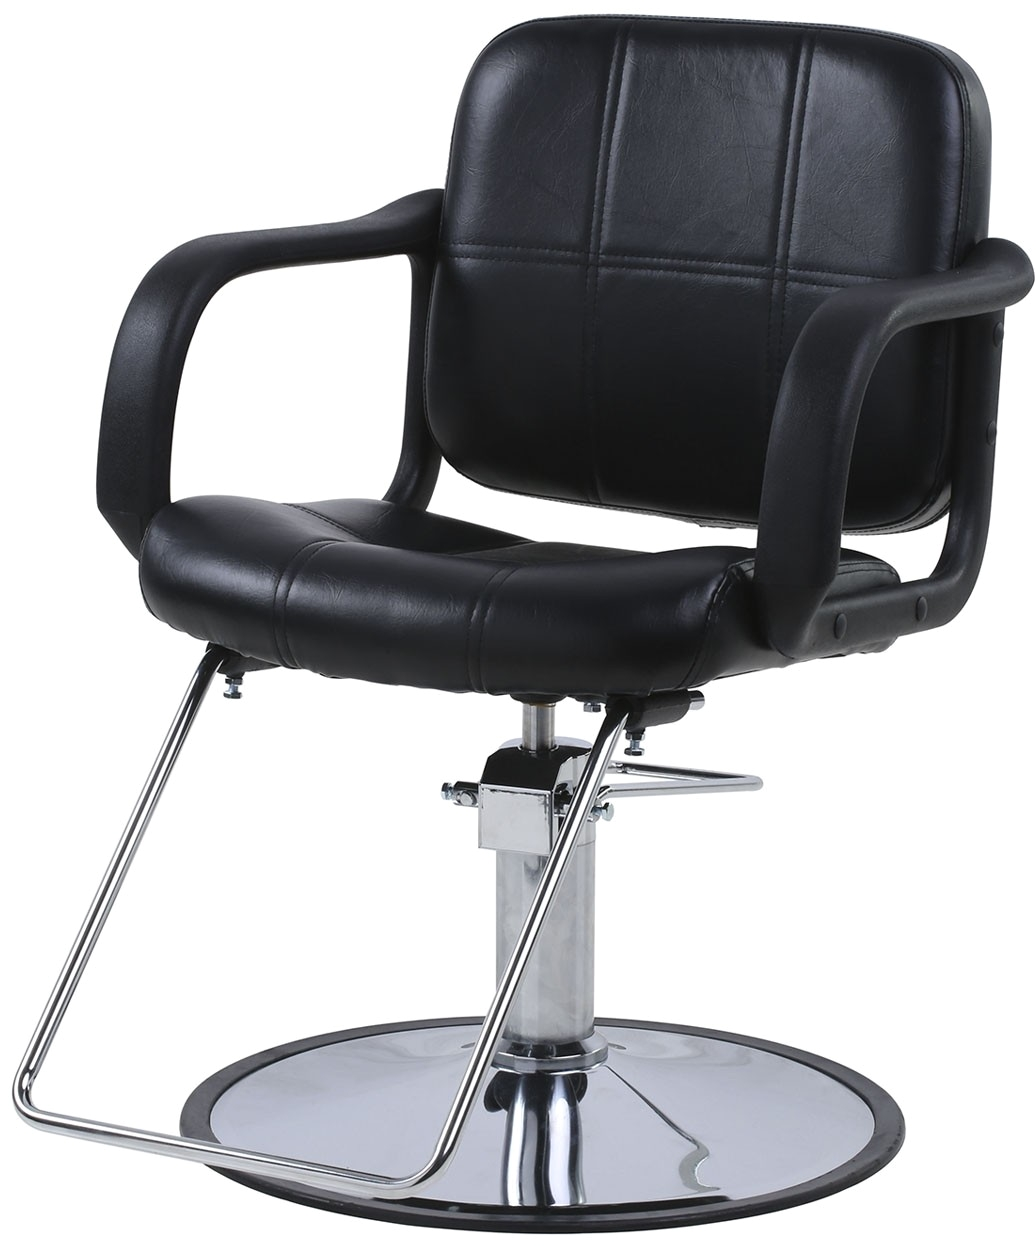 Salon Chairs for Sale Cheap Hydraulic Salon Styling Chair Chris Styling Chair Pump